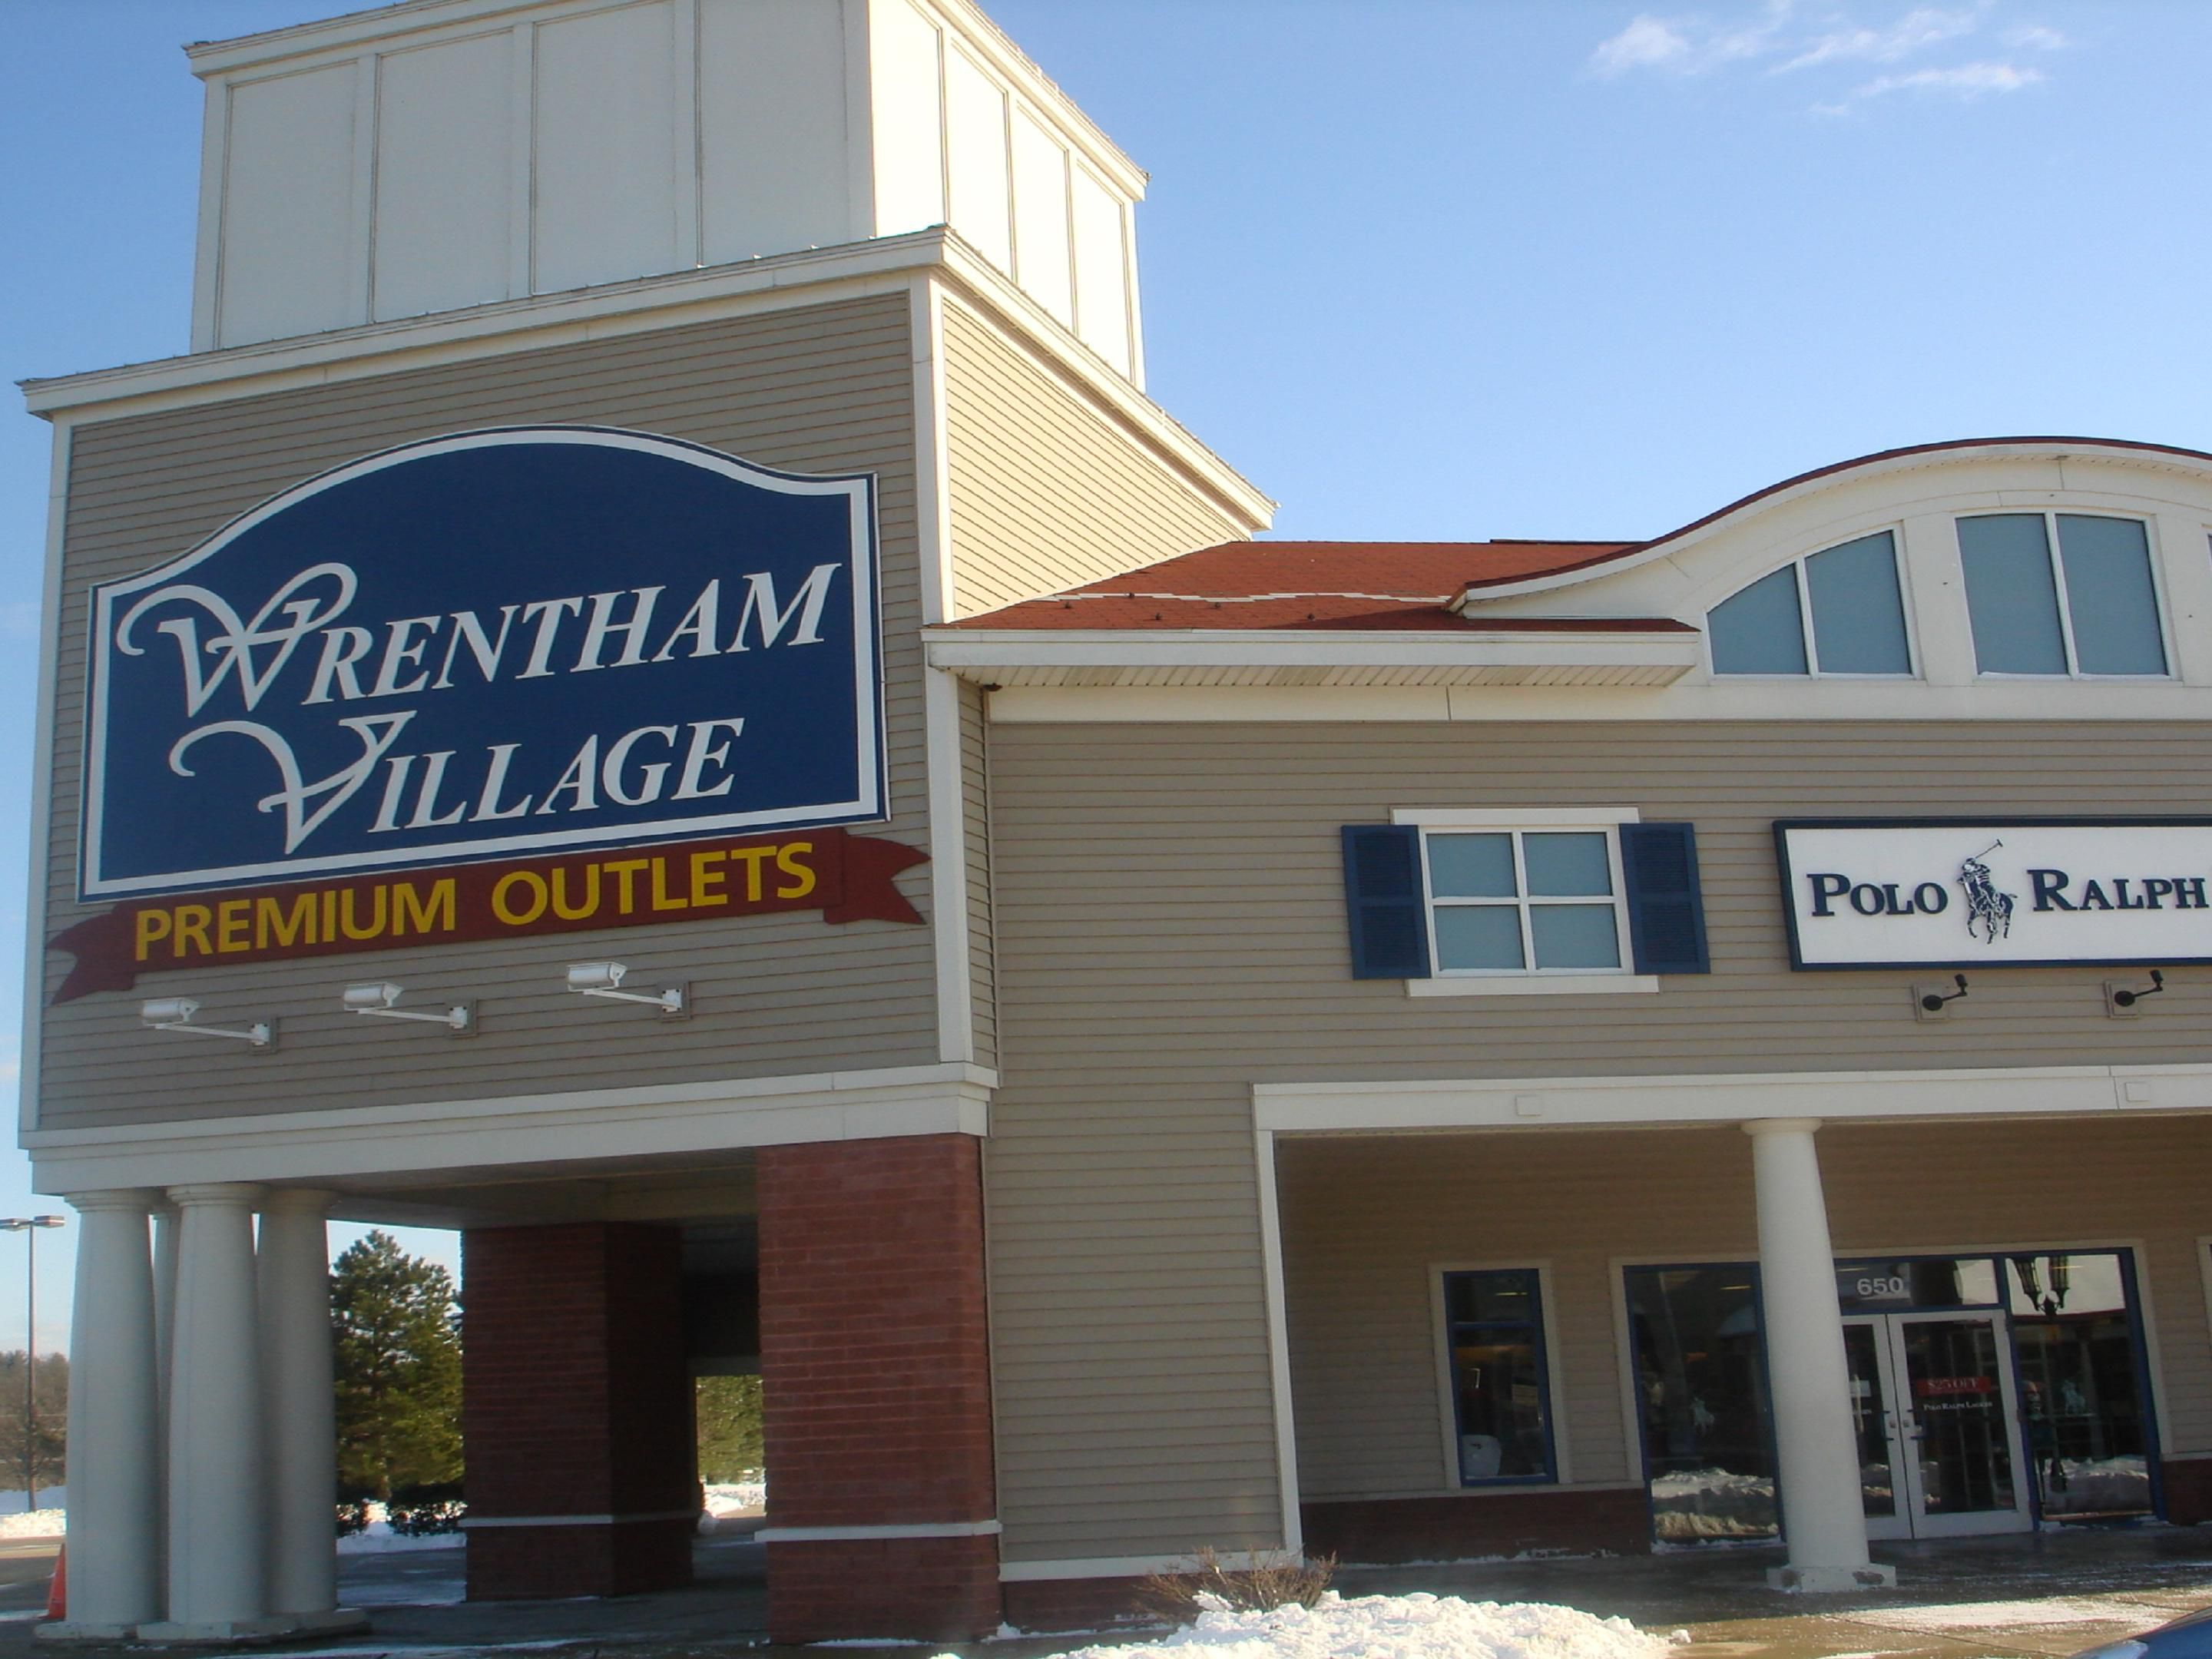 Just a 15 minute drive is the Wrentham Village Premium Outlets